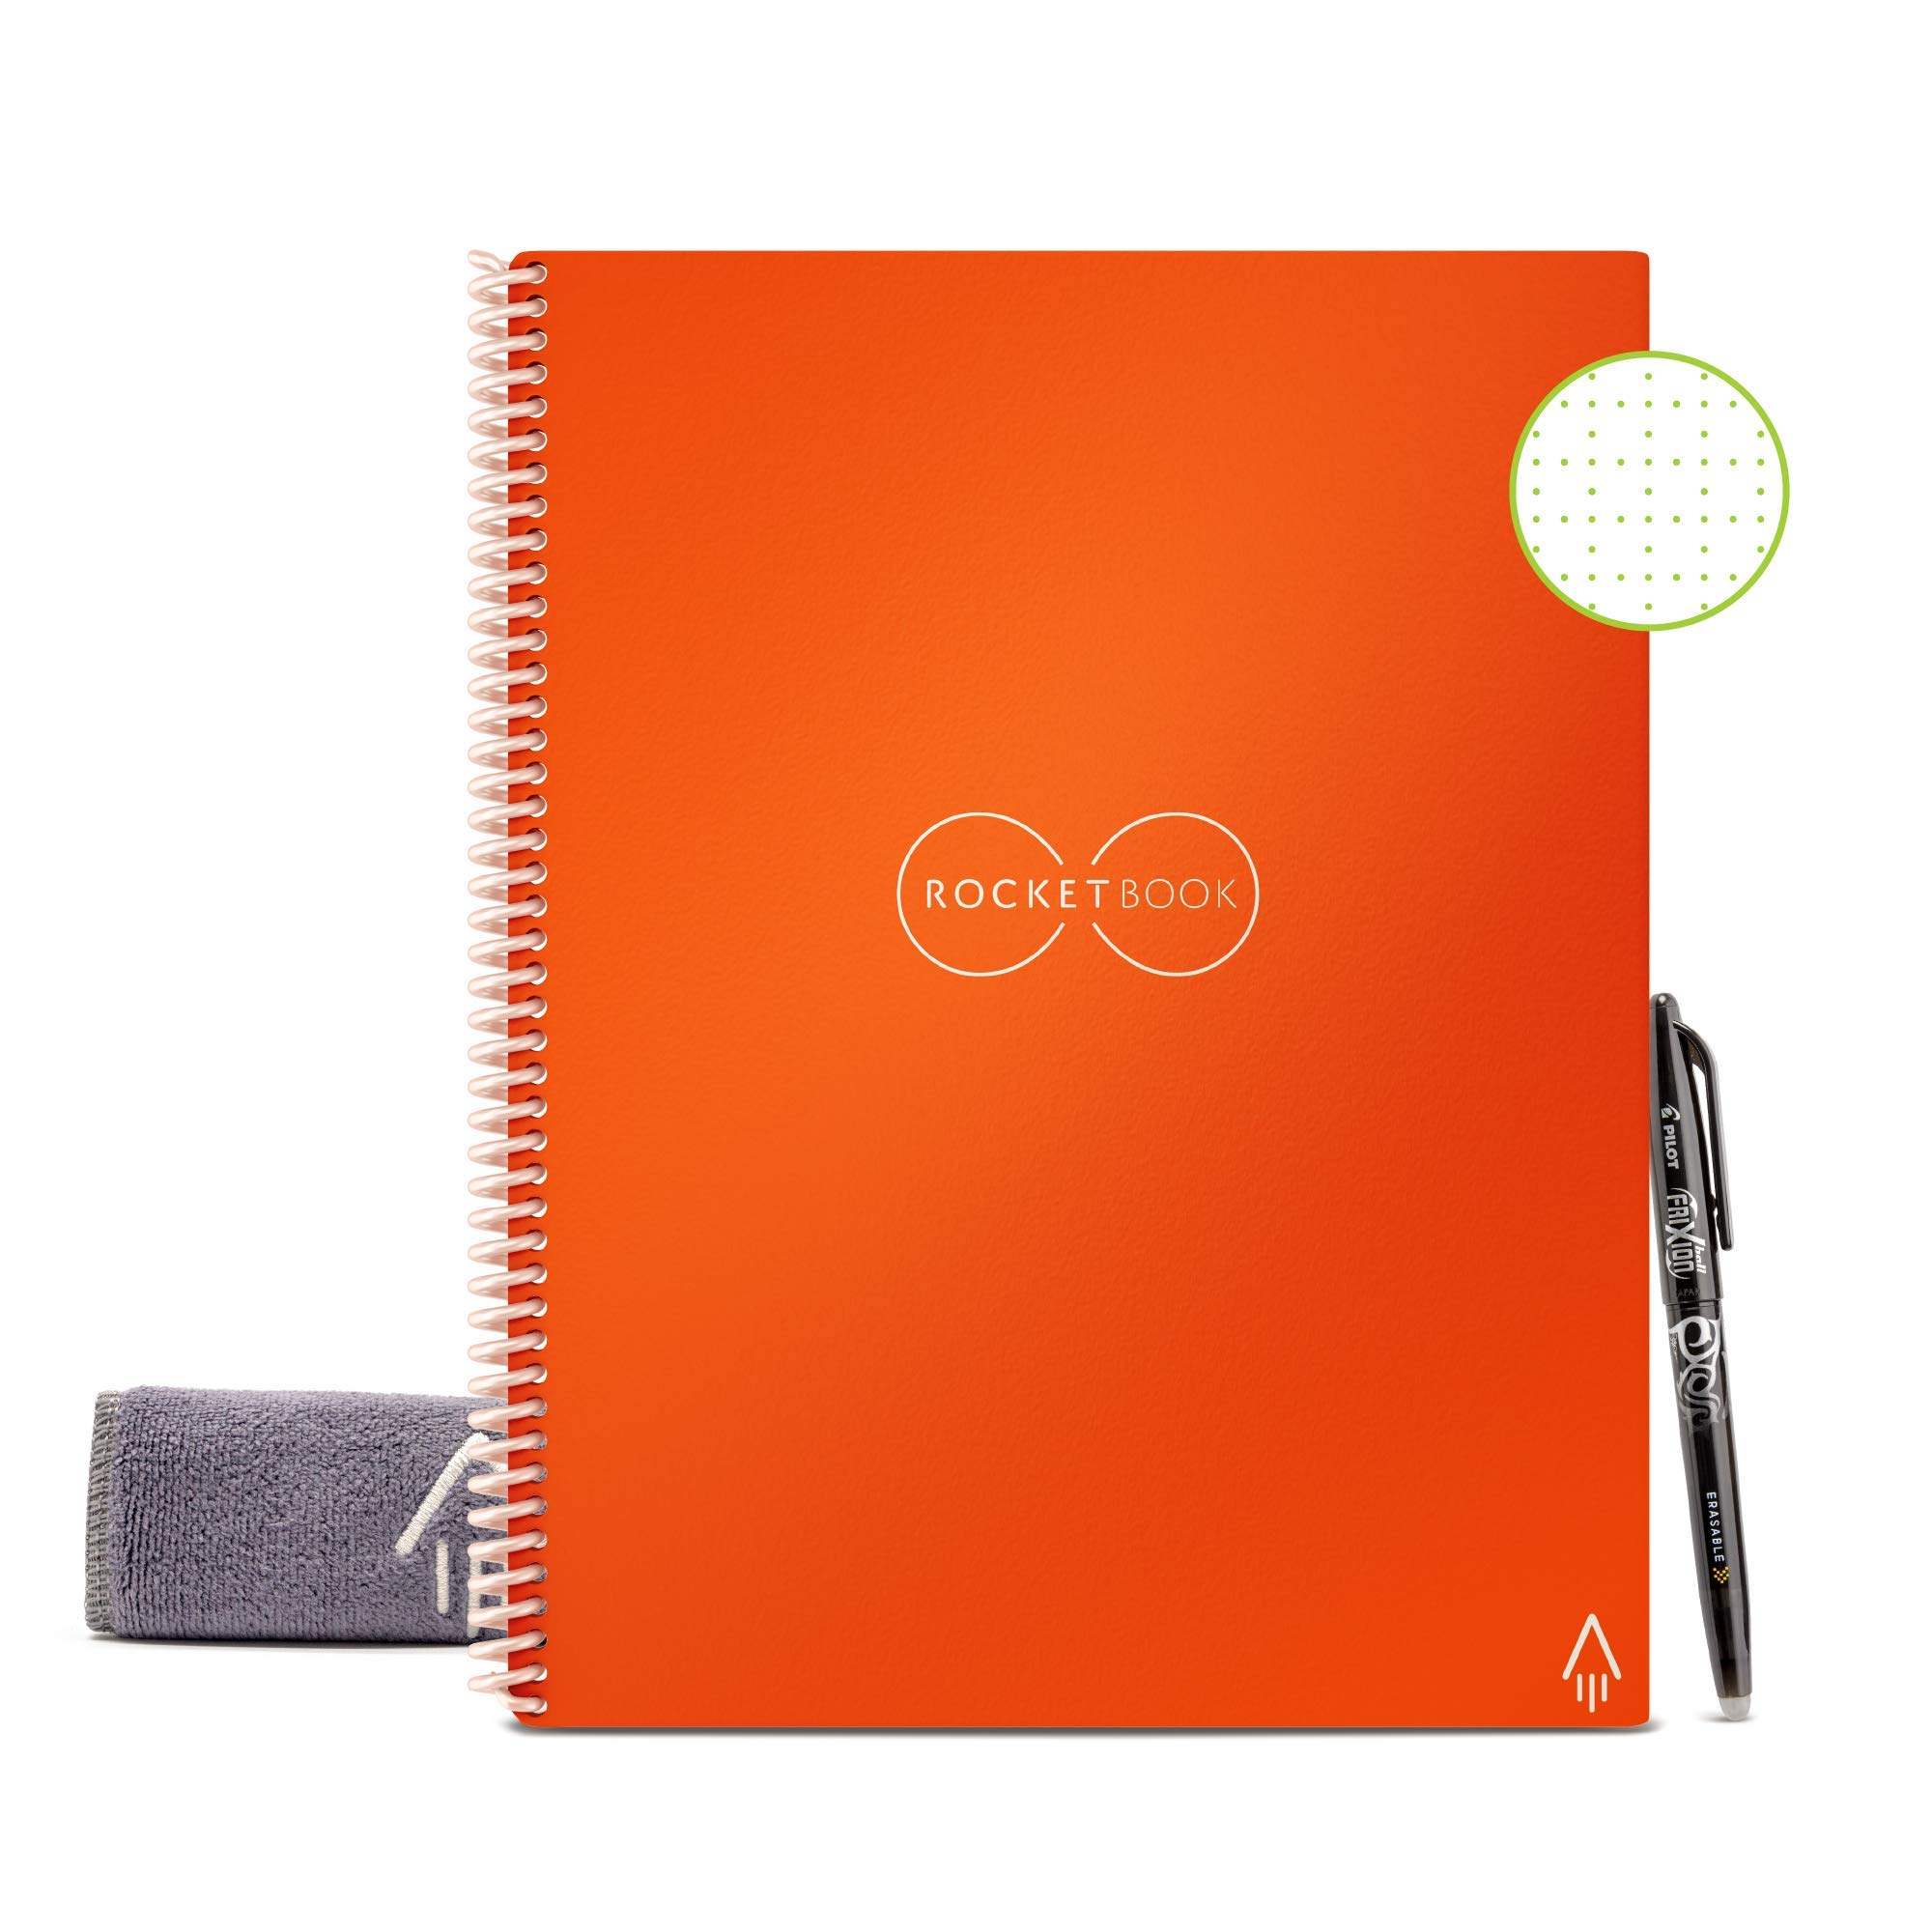 """Rocketbook Smart Reusable Notebook - Dot-Grid Eco-Friendly Notebook with 1 Pilot Frixion Pen & 1 Microfiber Cloth Included - Beacon Orange Cover, Letter Size (8.5"""" x 11"""")"""